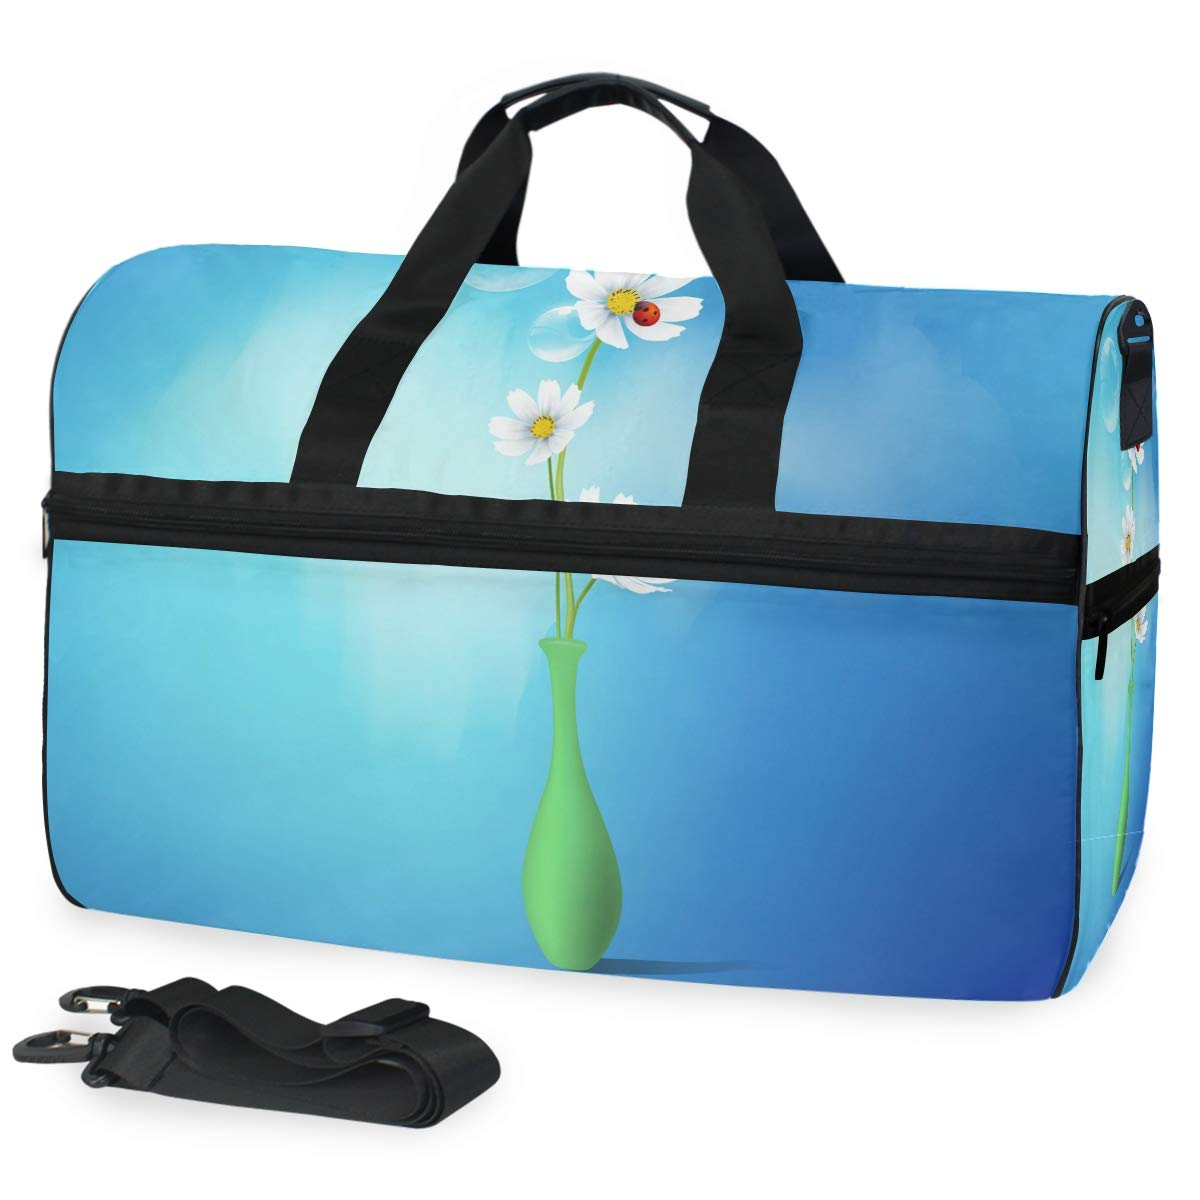 Art Daisy Flowers Sports Swim Gym Bag with Shoes Compartment Weekender Crossbody Duffel Bags Handbag for Travel Women Girls Men